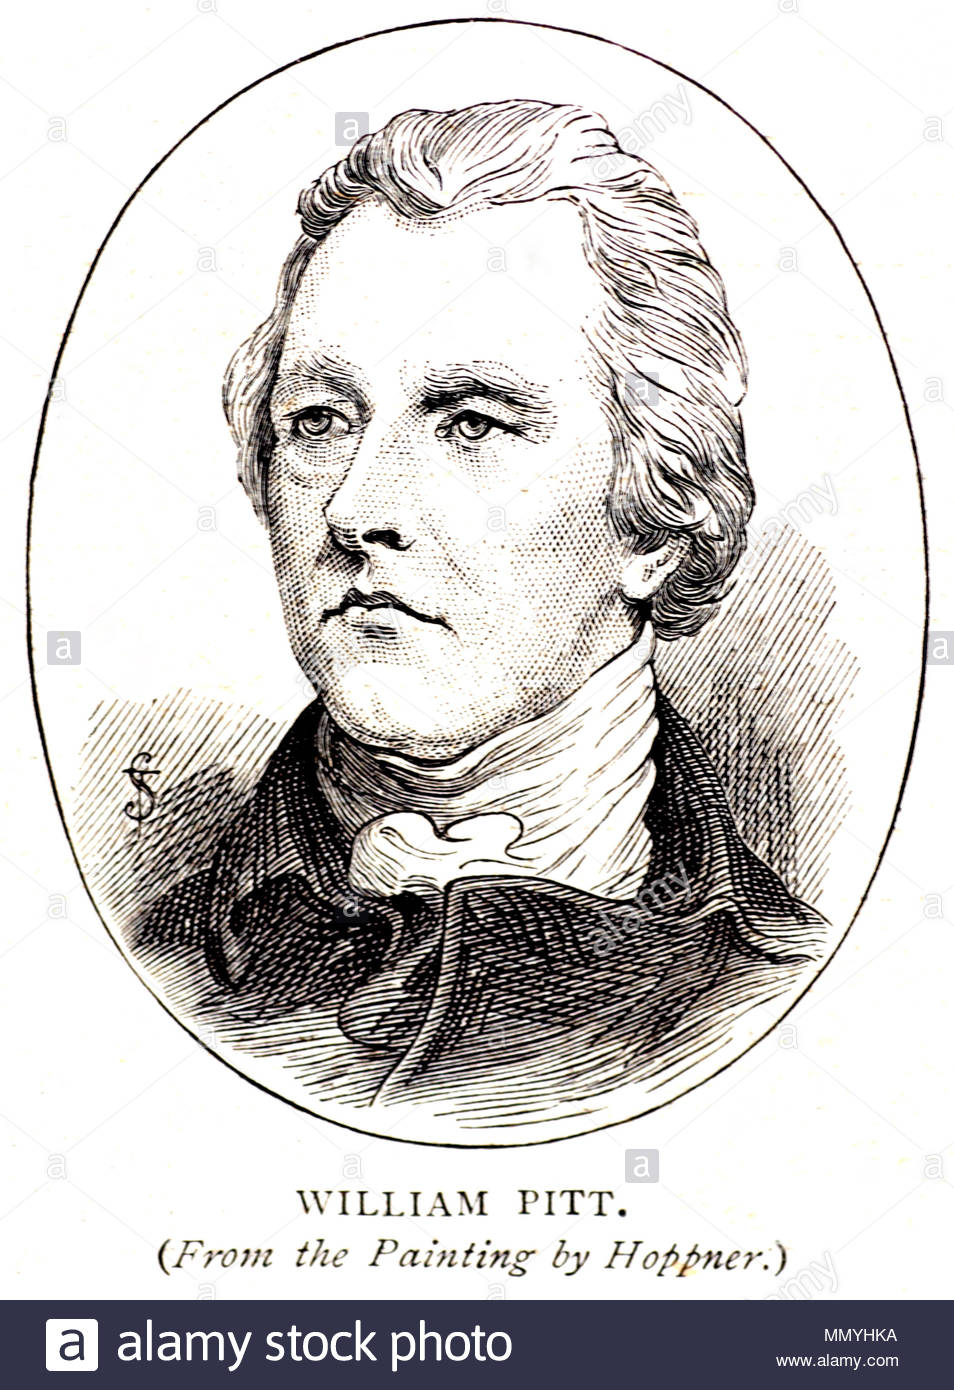 William Pitt the Younger 1759 – 1806, was a prominent British Tory statesman of the late 18th and early 19th centuries, he became the youngest British prime minister in 1783 at the age of 24, antique illustration from 1898 - Stock Image